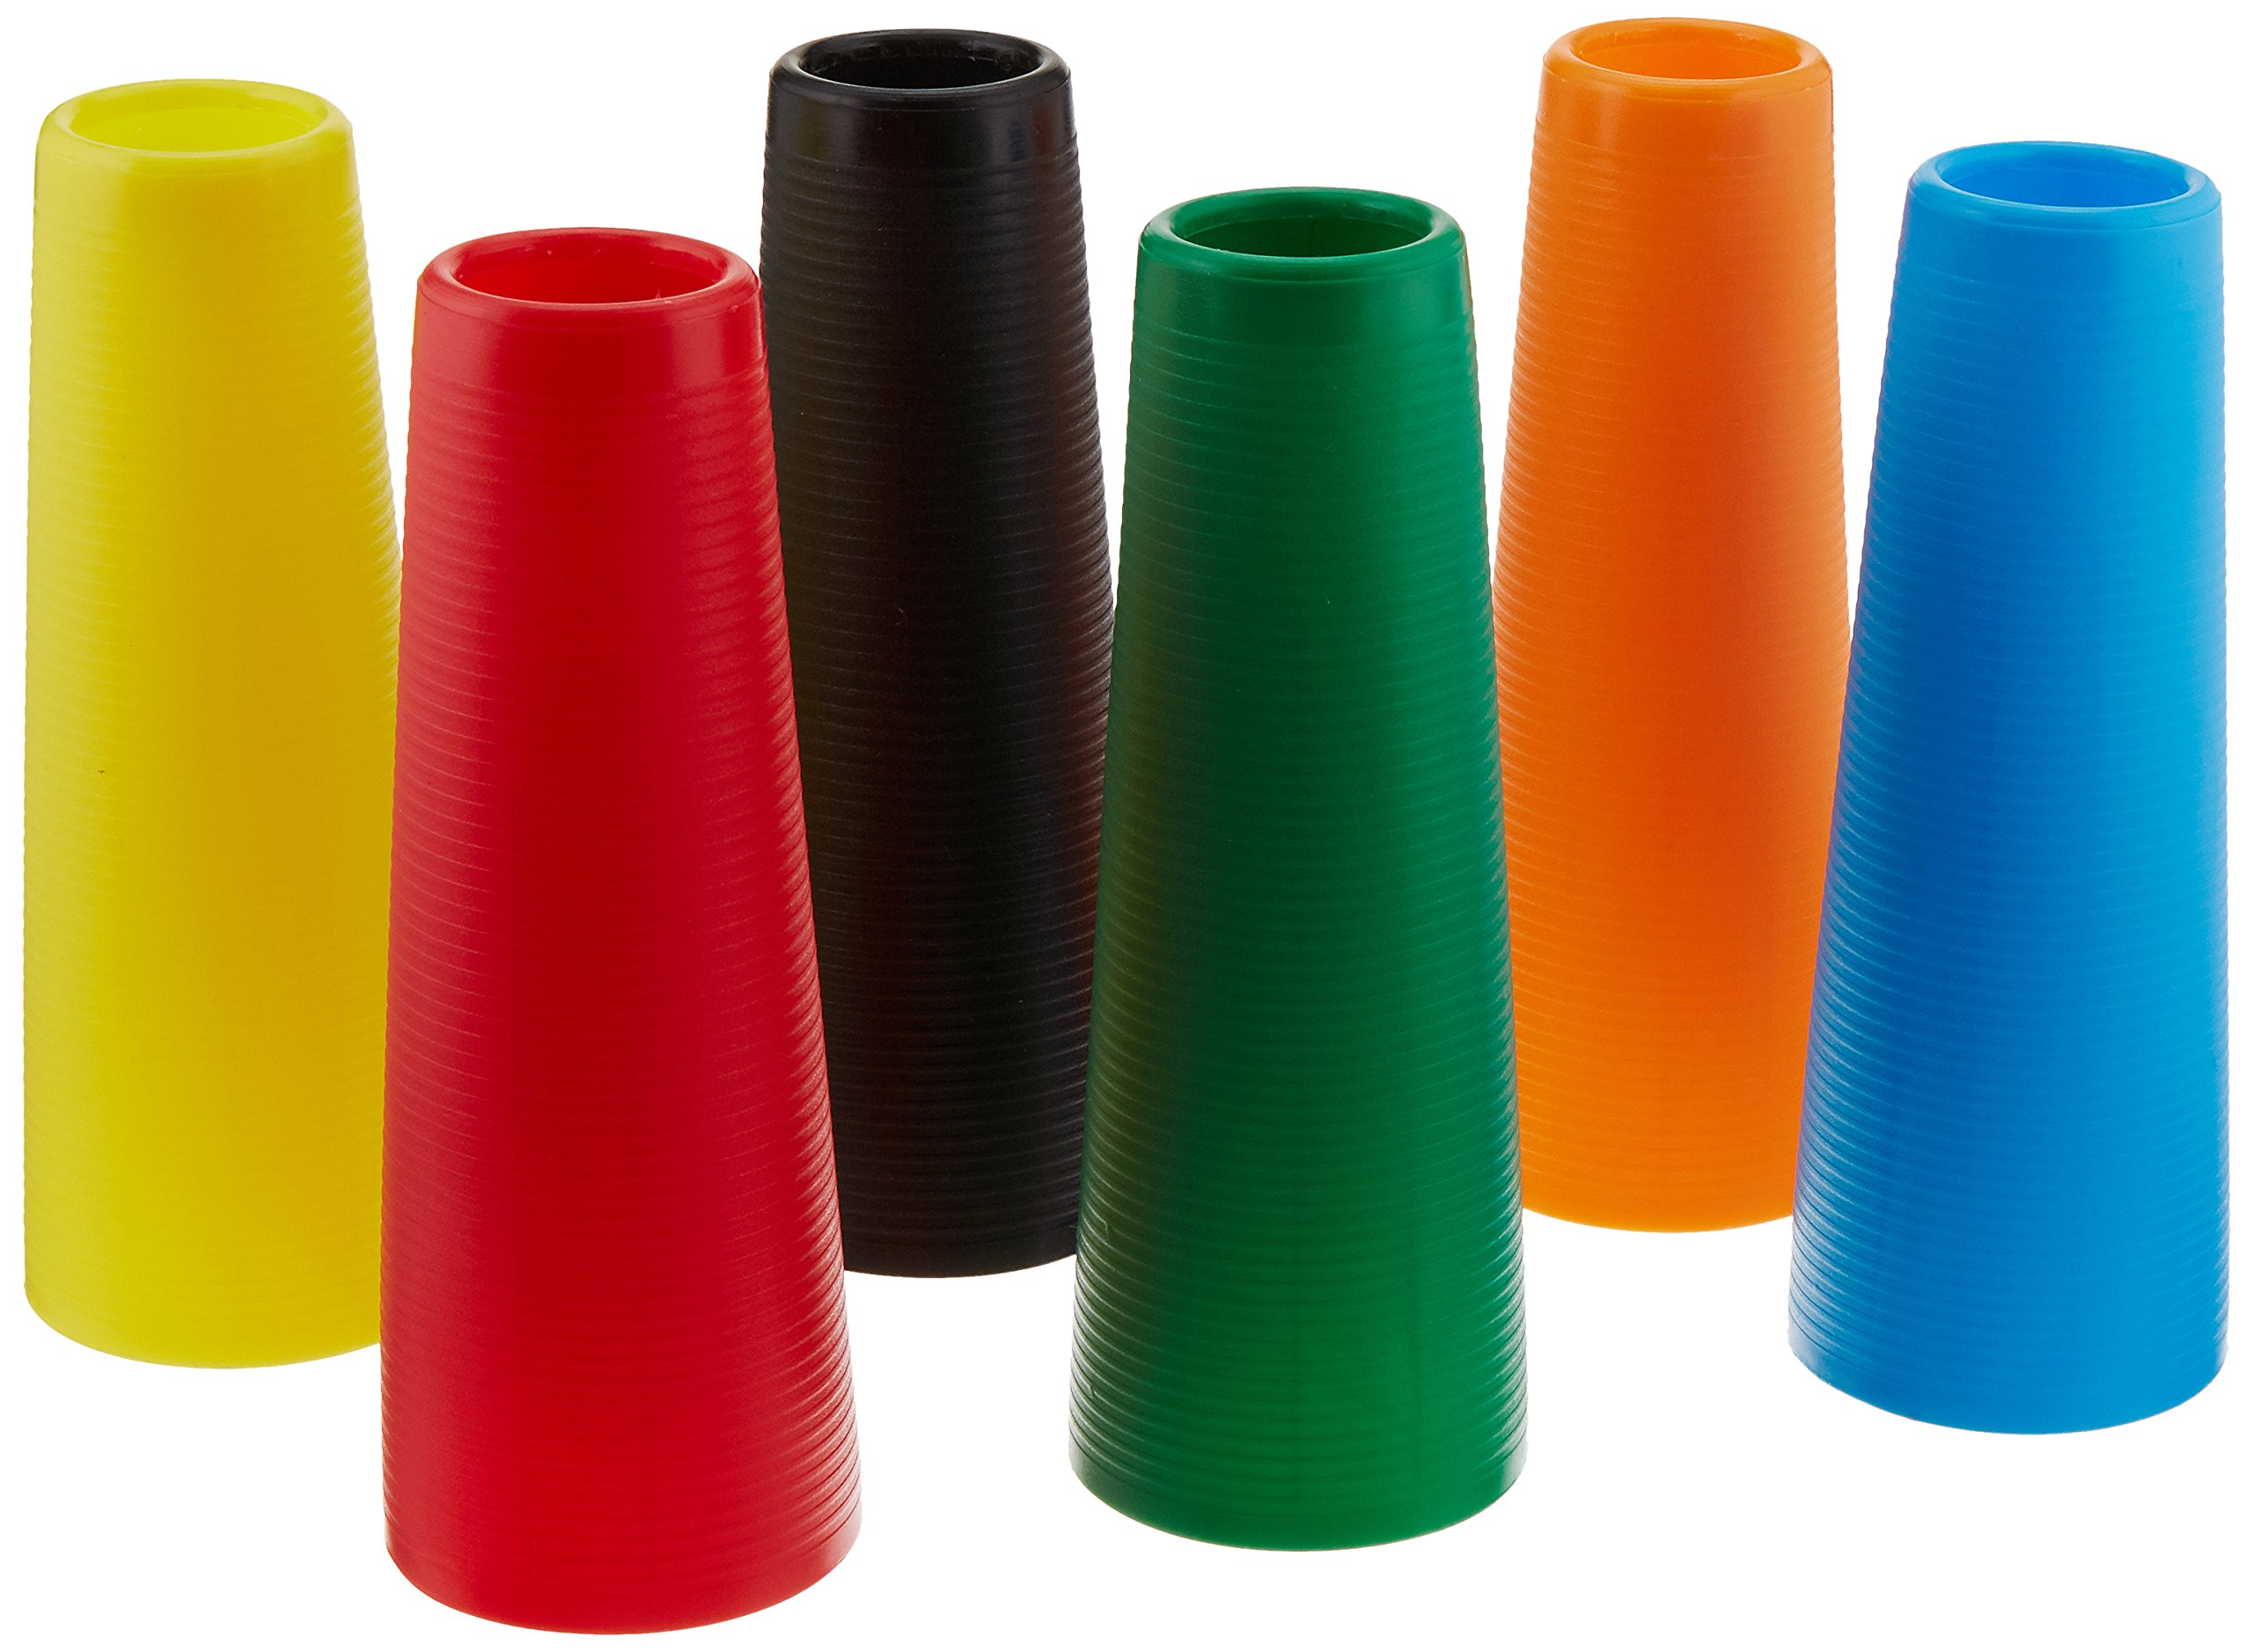 Sammons Preston Plastic Large Stack Cones, Medical Rehabiliation and Activity Exercise for Recovery, Funtional Hand Therapy for Upper Extremity, Hand-Eye Coordination, Set of 30 by Sammons Preston (Image #1)